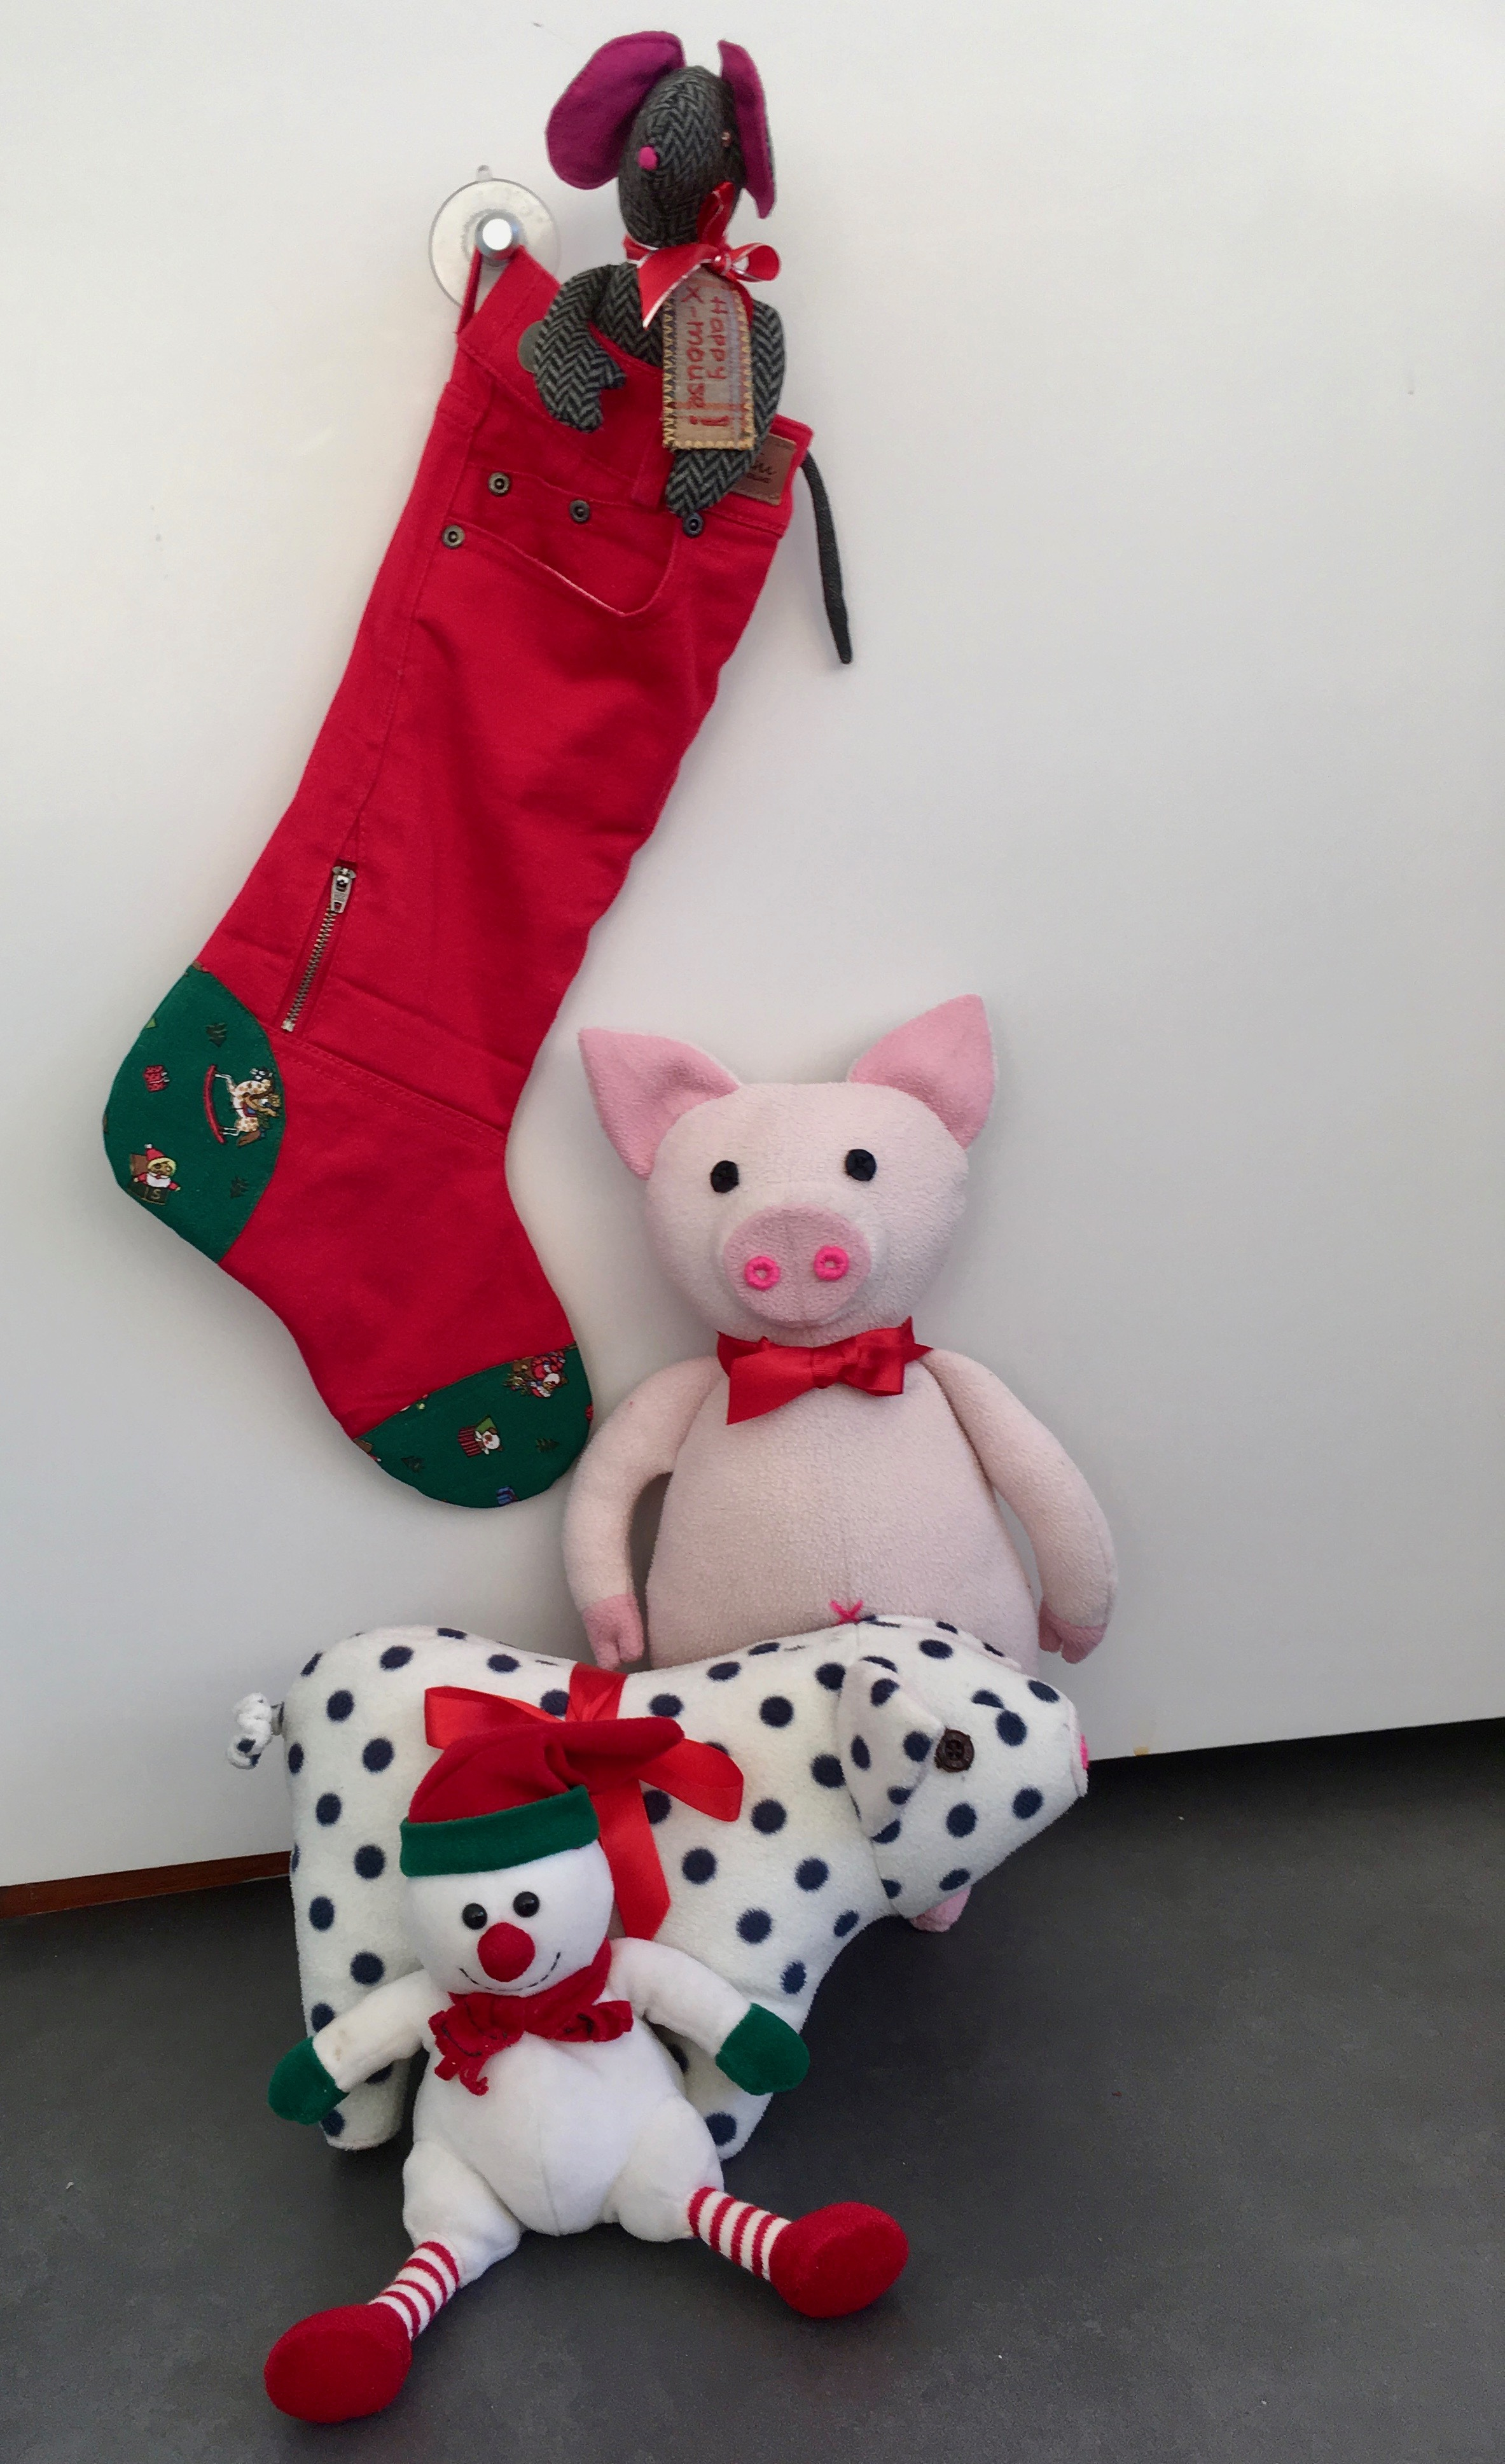 Two Homemade Good Luck Pigs